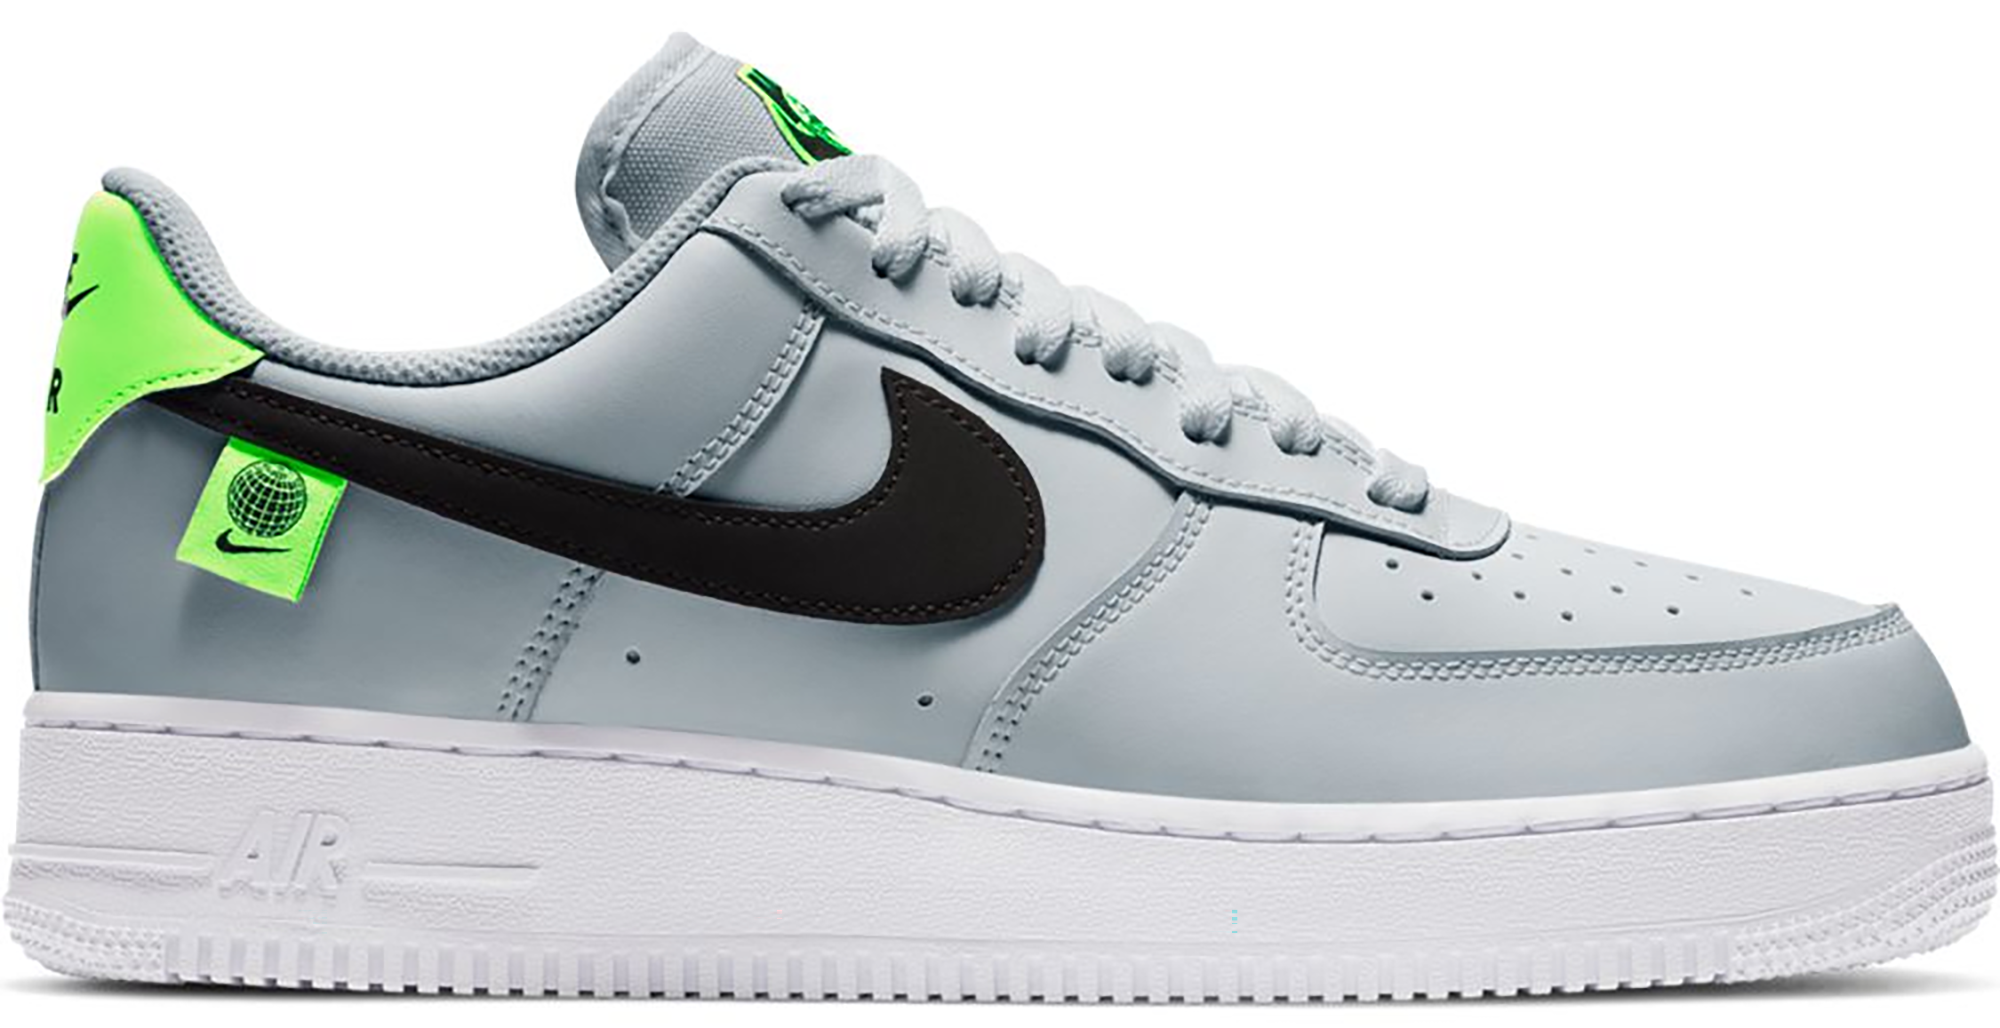 Nike Air Force 1 Low Worldwide Pure